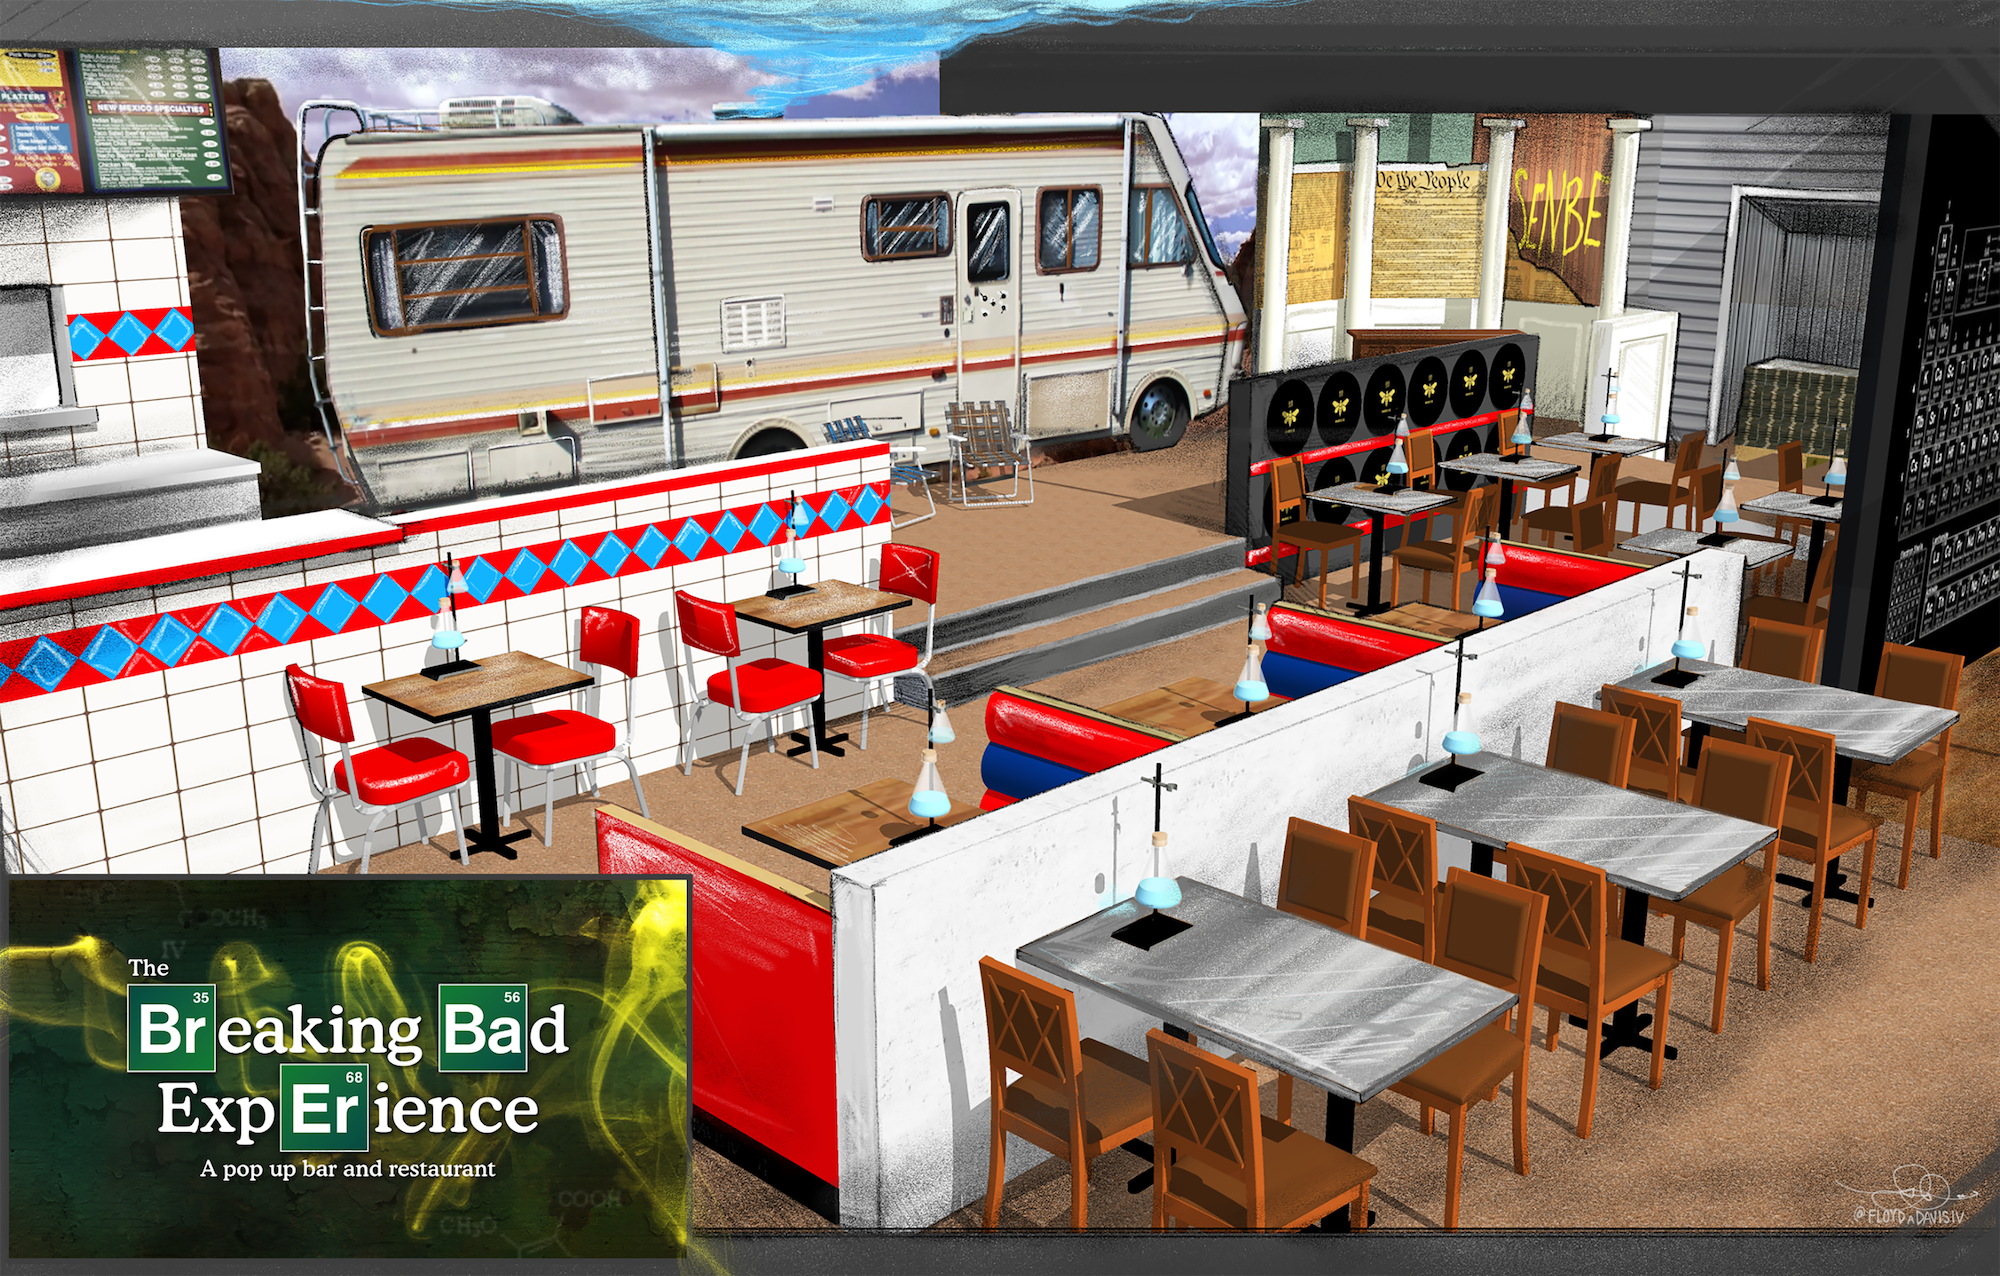 You Can Eat Heisenburgers And Make Your Own Cocktails At This Breaking Bad Pop-Up Bar